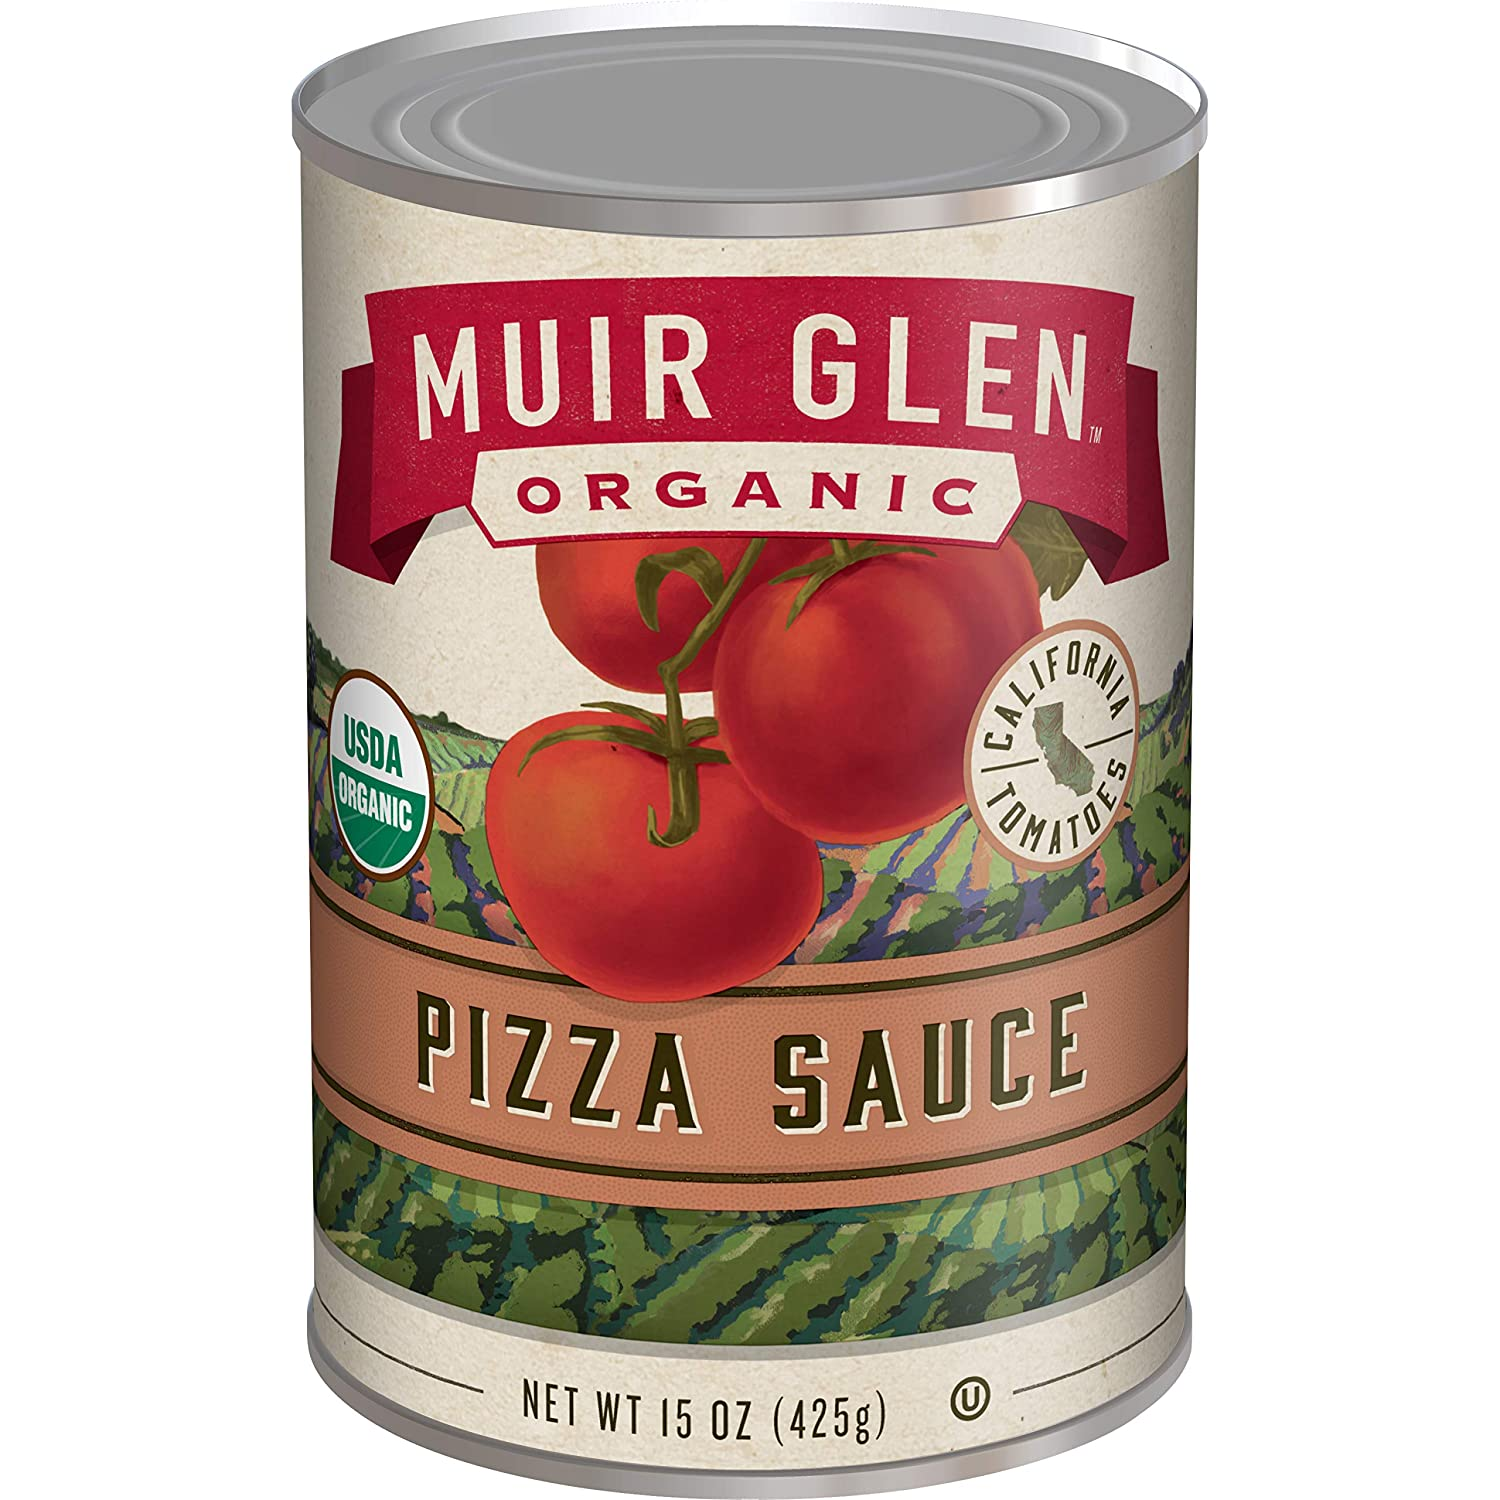 Muir Glen Organic review